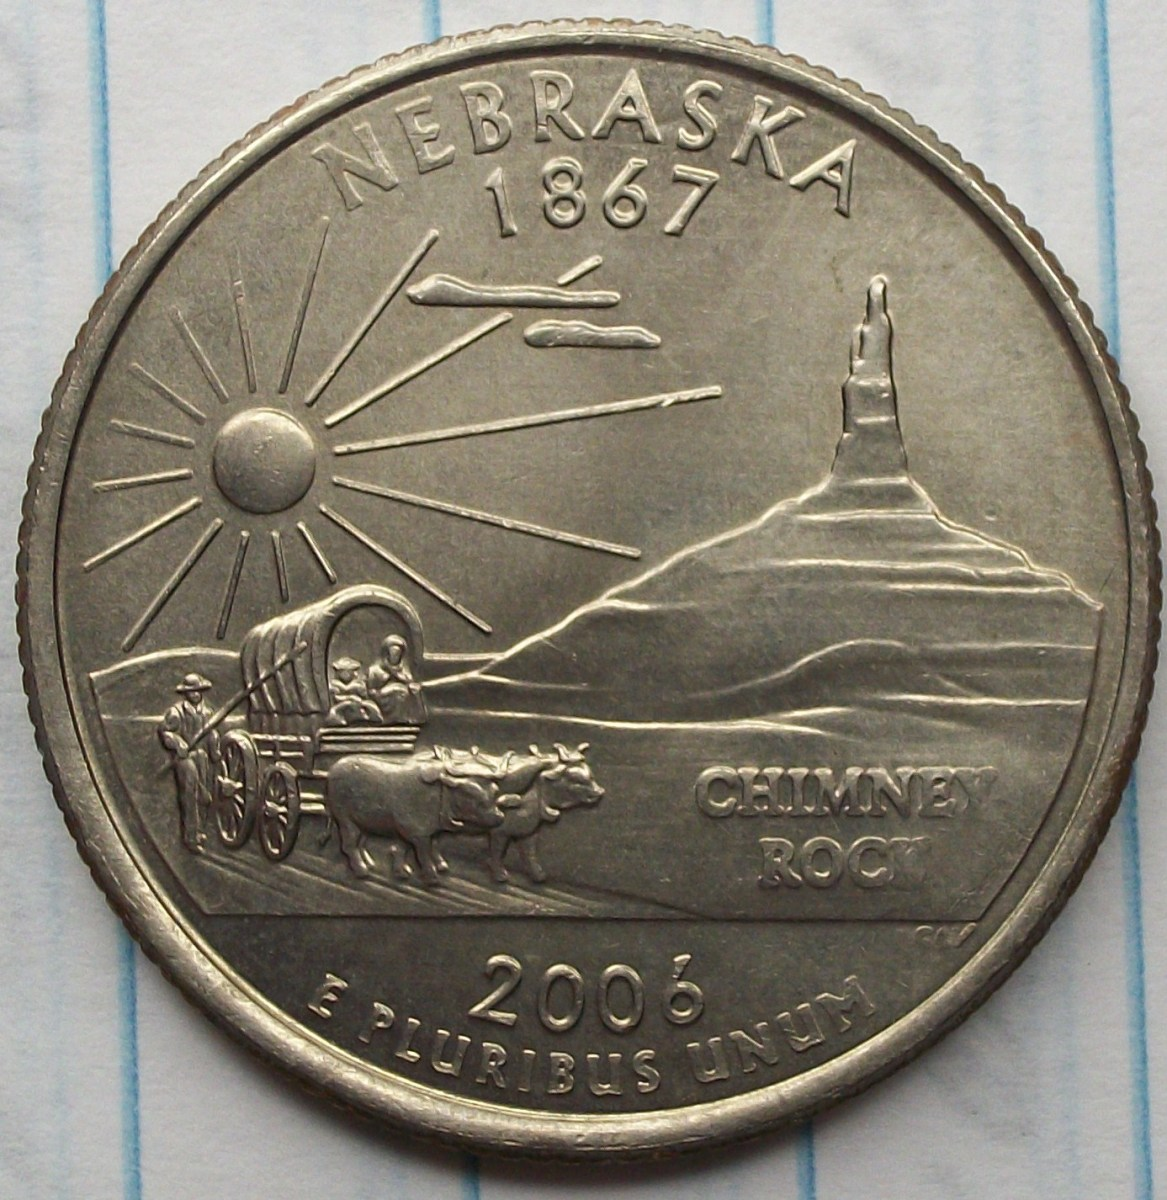 reverse of the 2006D Nebraska Quarter also heavly polished.